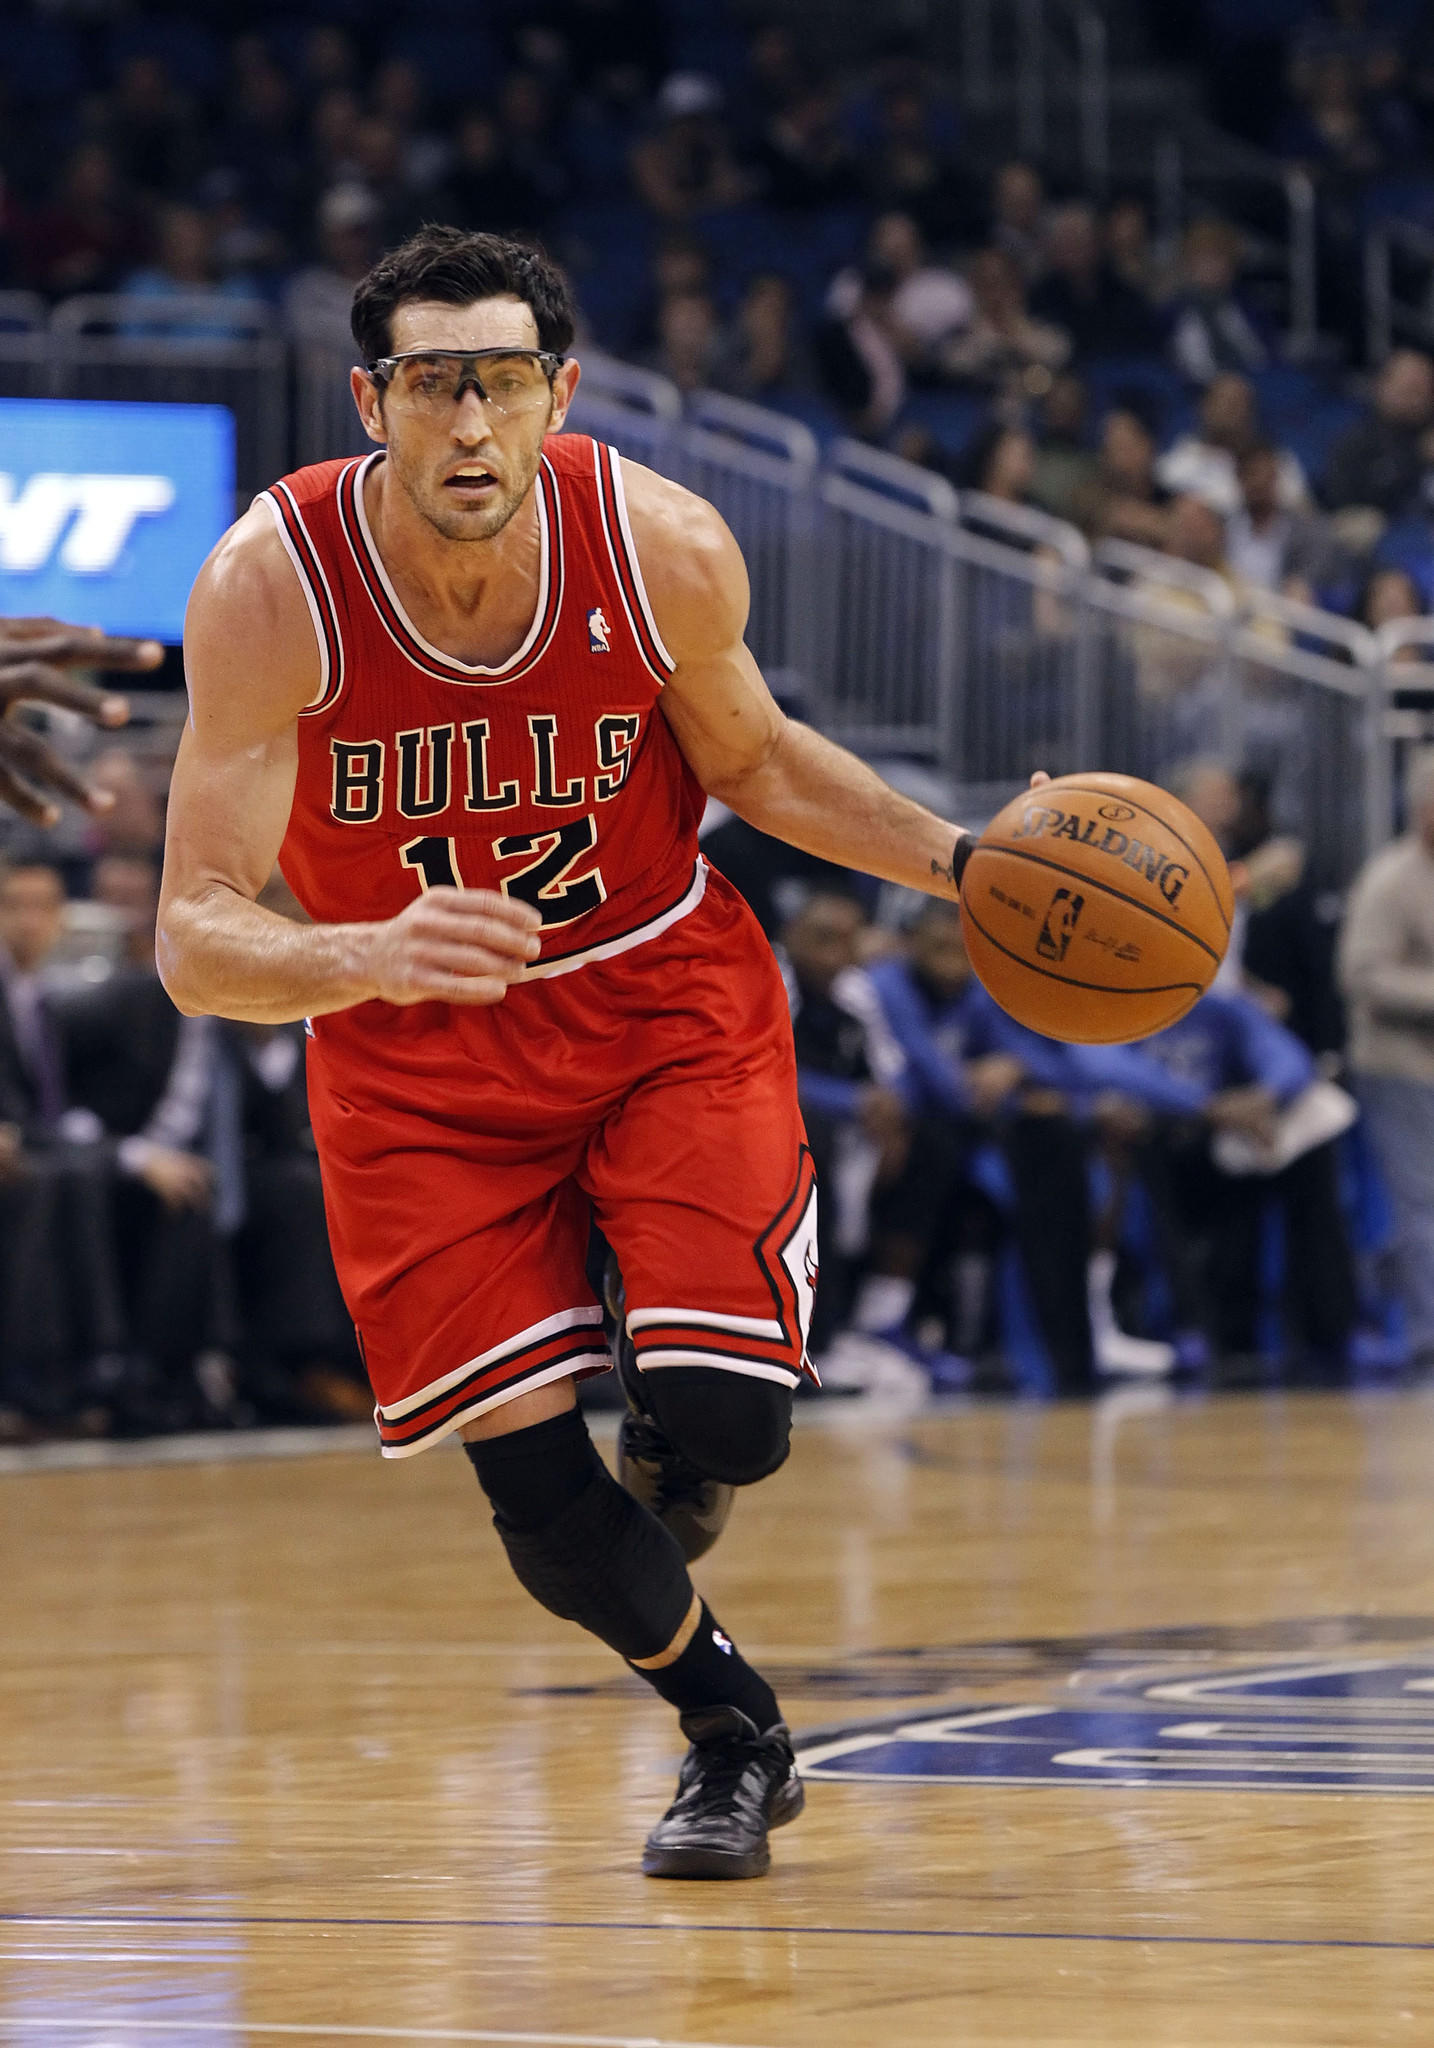 Bulls shooting guard Kirk Hinrich (12) drives to the basket against the Orlando Magic.